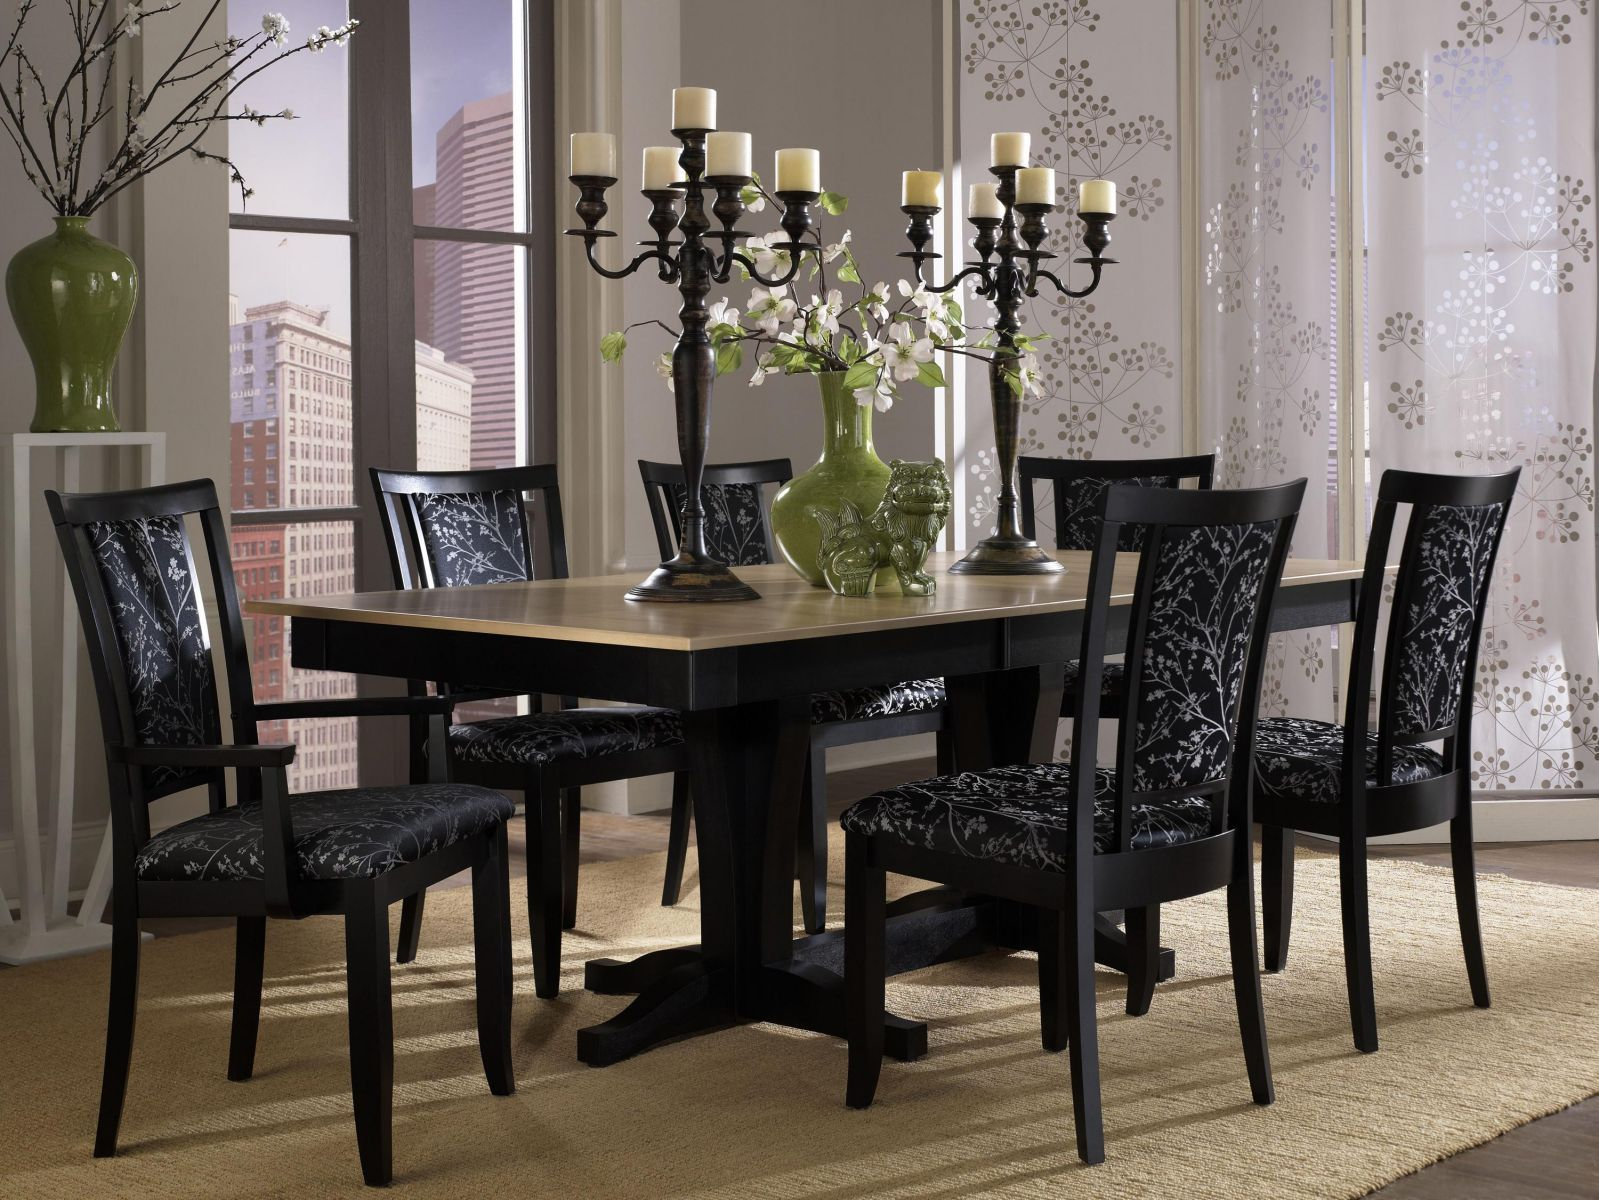 Stylish Dining Room Set Idea With Black Floral Upholstered Chairs And Two  Tone Dining Table And Part 75